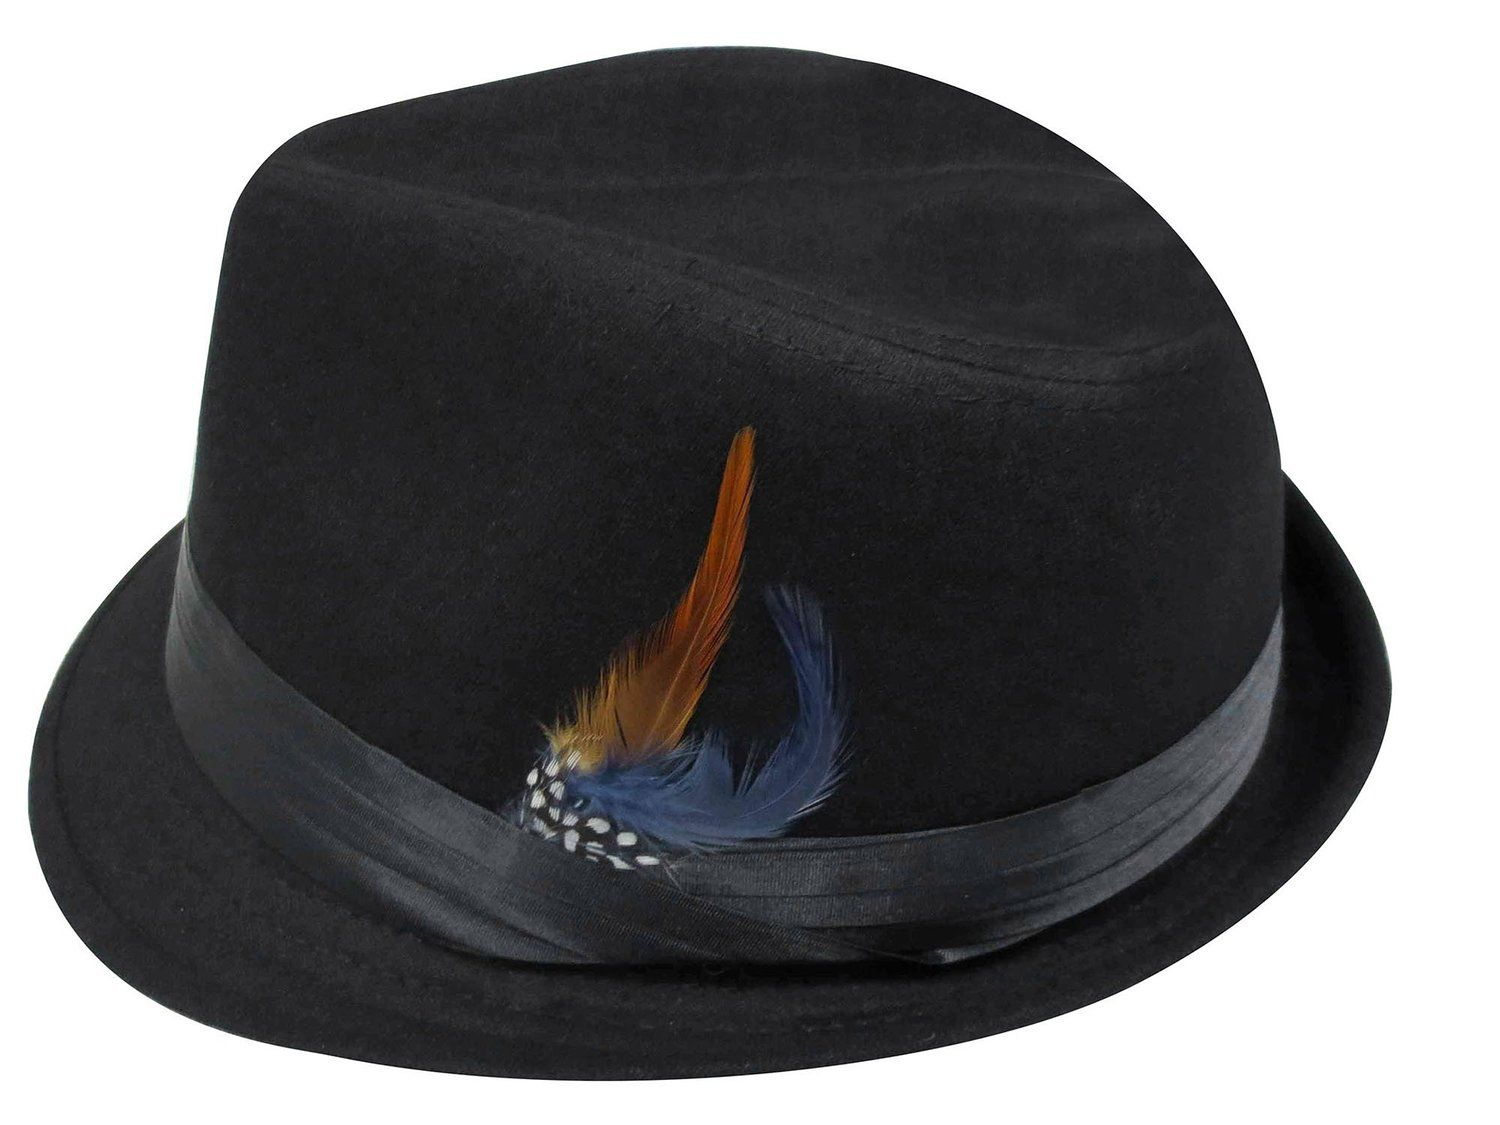 328c35722 about $12 Amazon. Simplicity® Fashion Adult Feather Trilby Wool ...